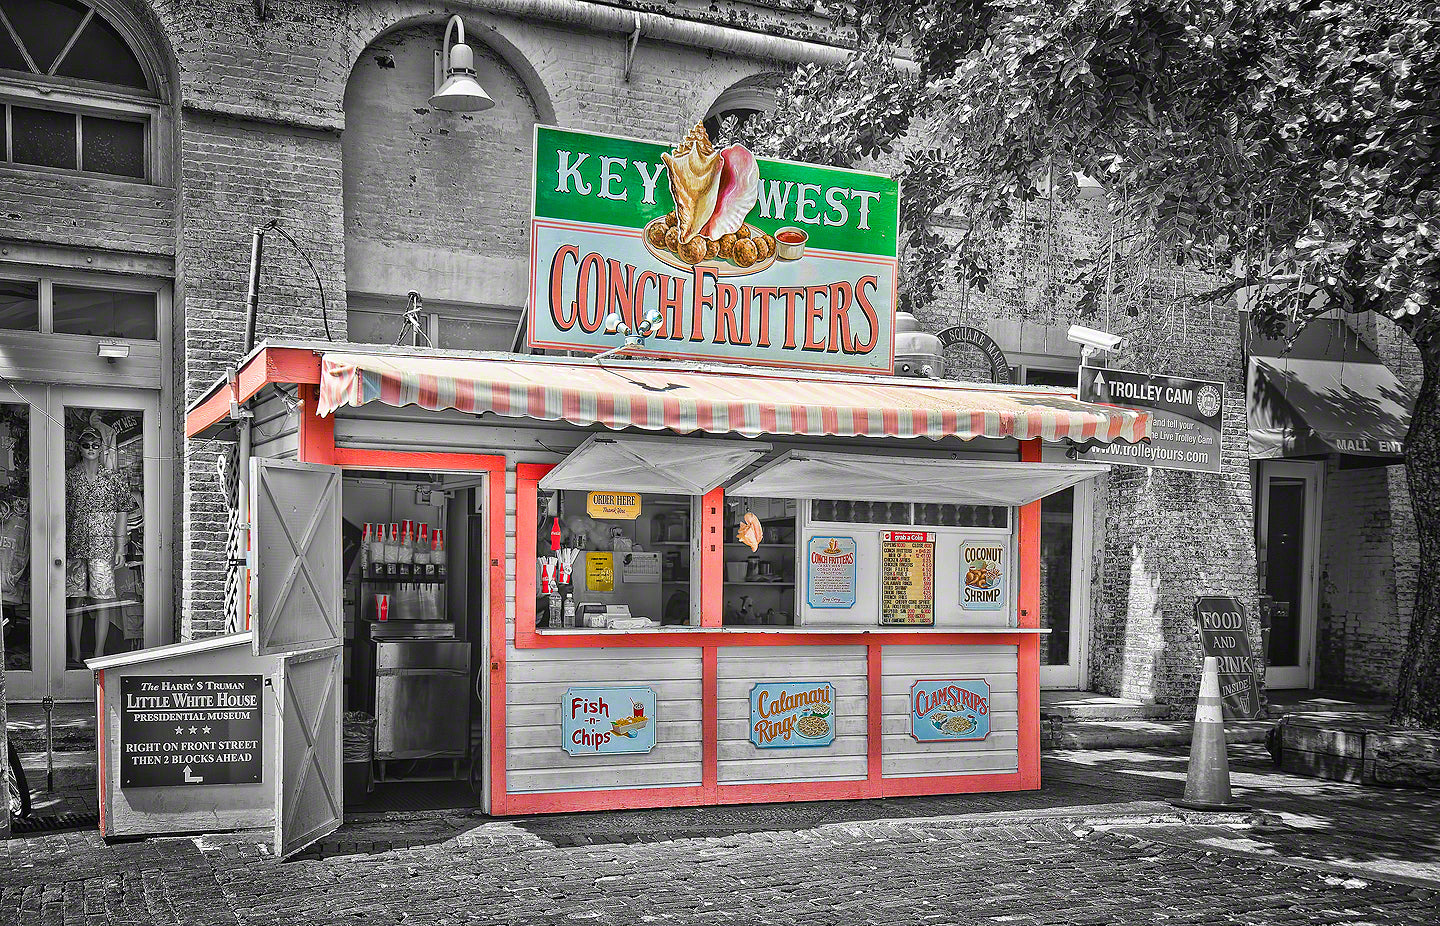 A photo of a colorful conch fritter stand in Key West, Florida